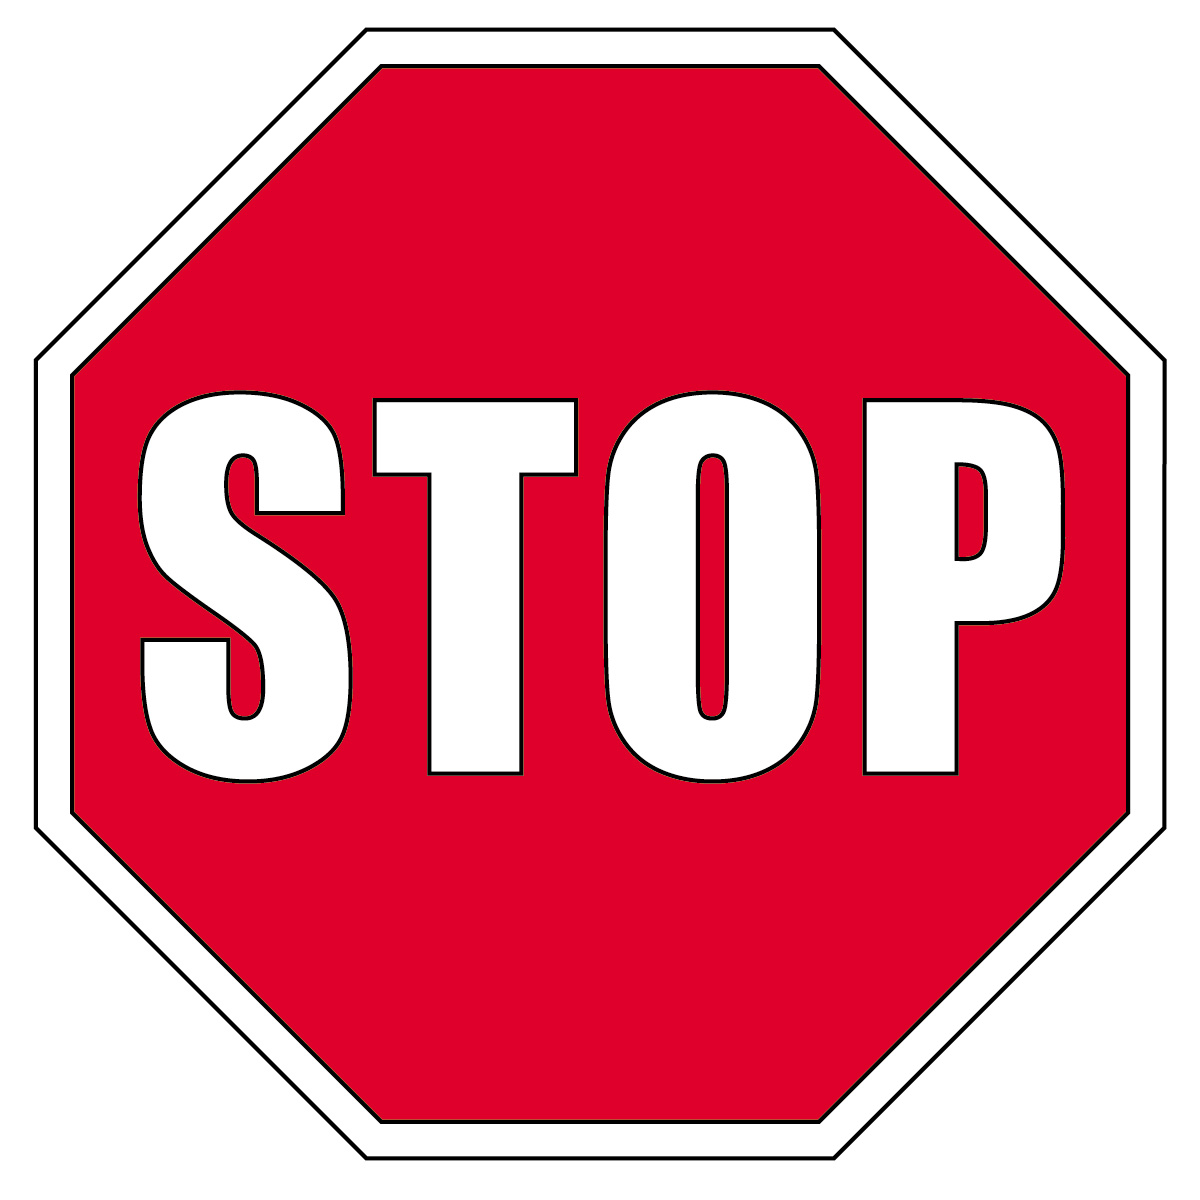 Stop clip art microsoft. Sign clipart clip art freeuse library